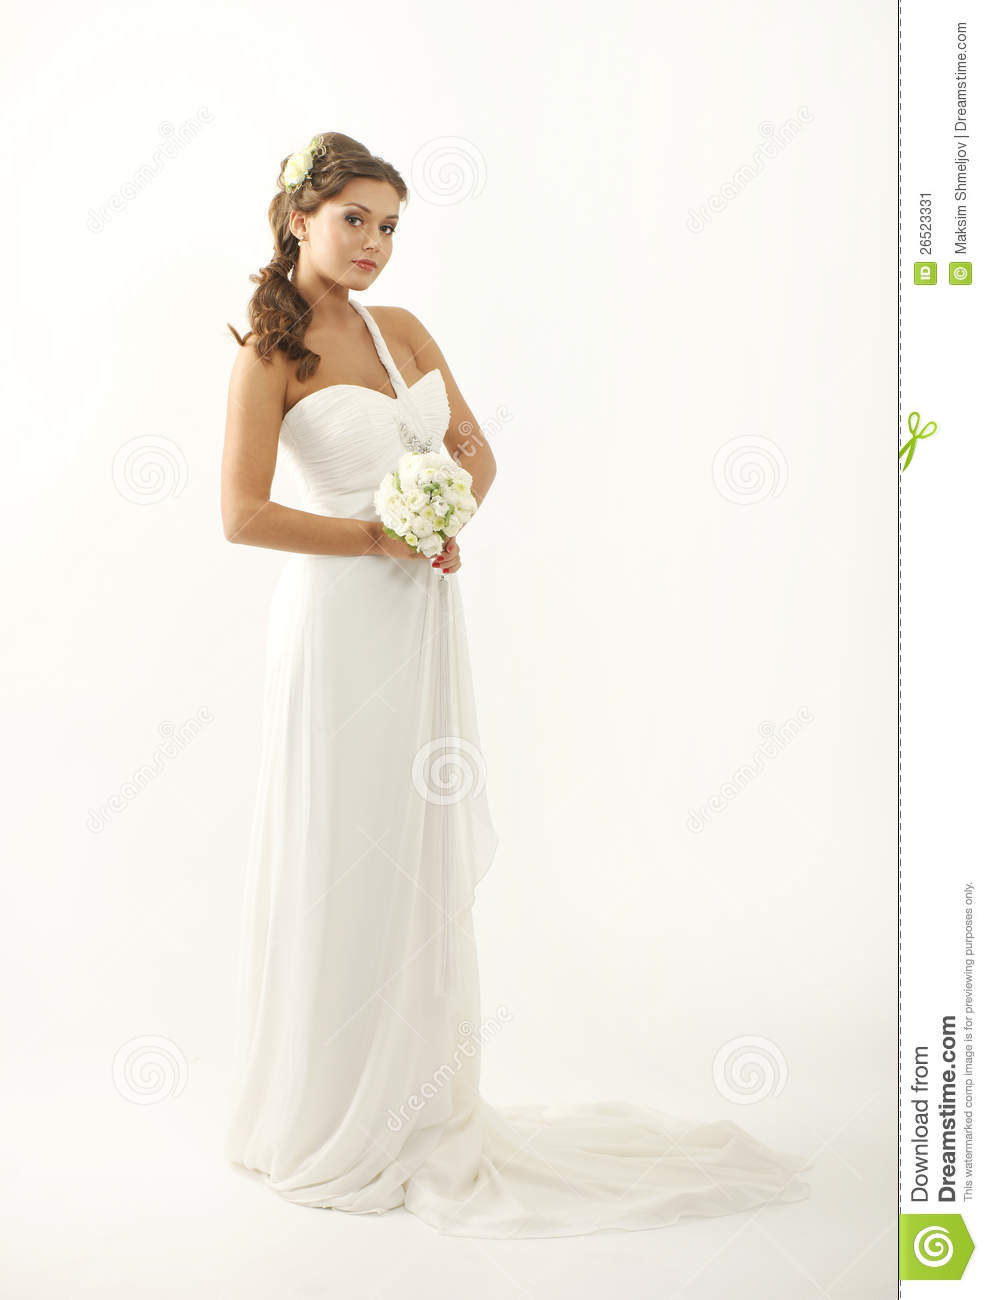 Us contact thin beautiful bride der Schlampen